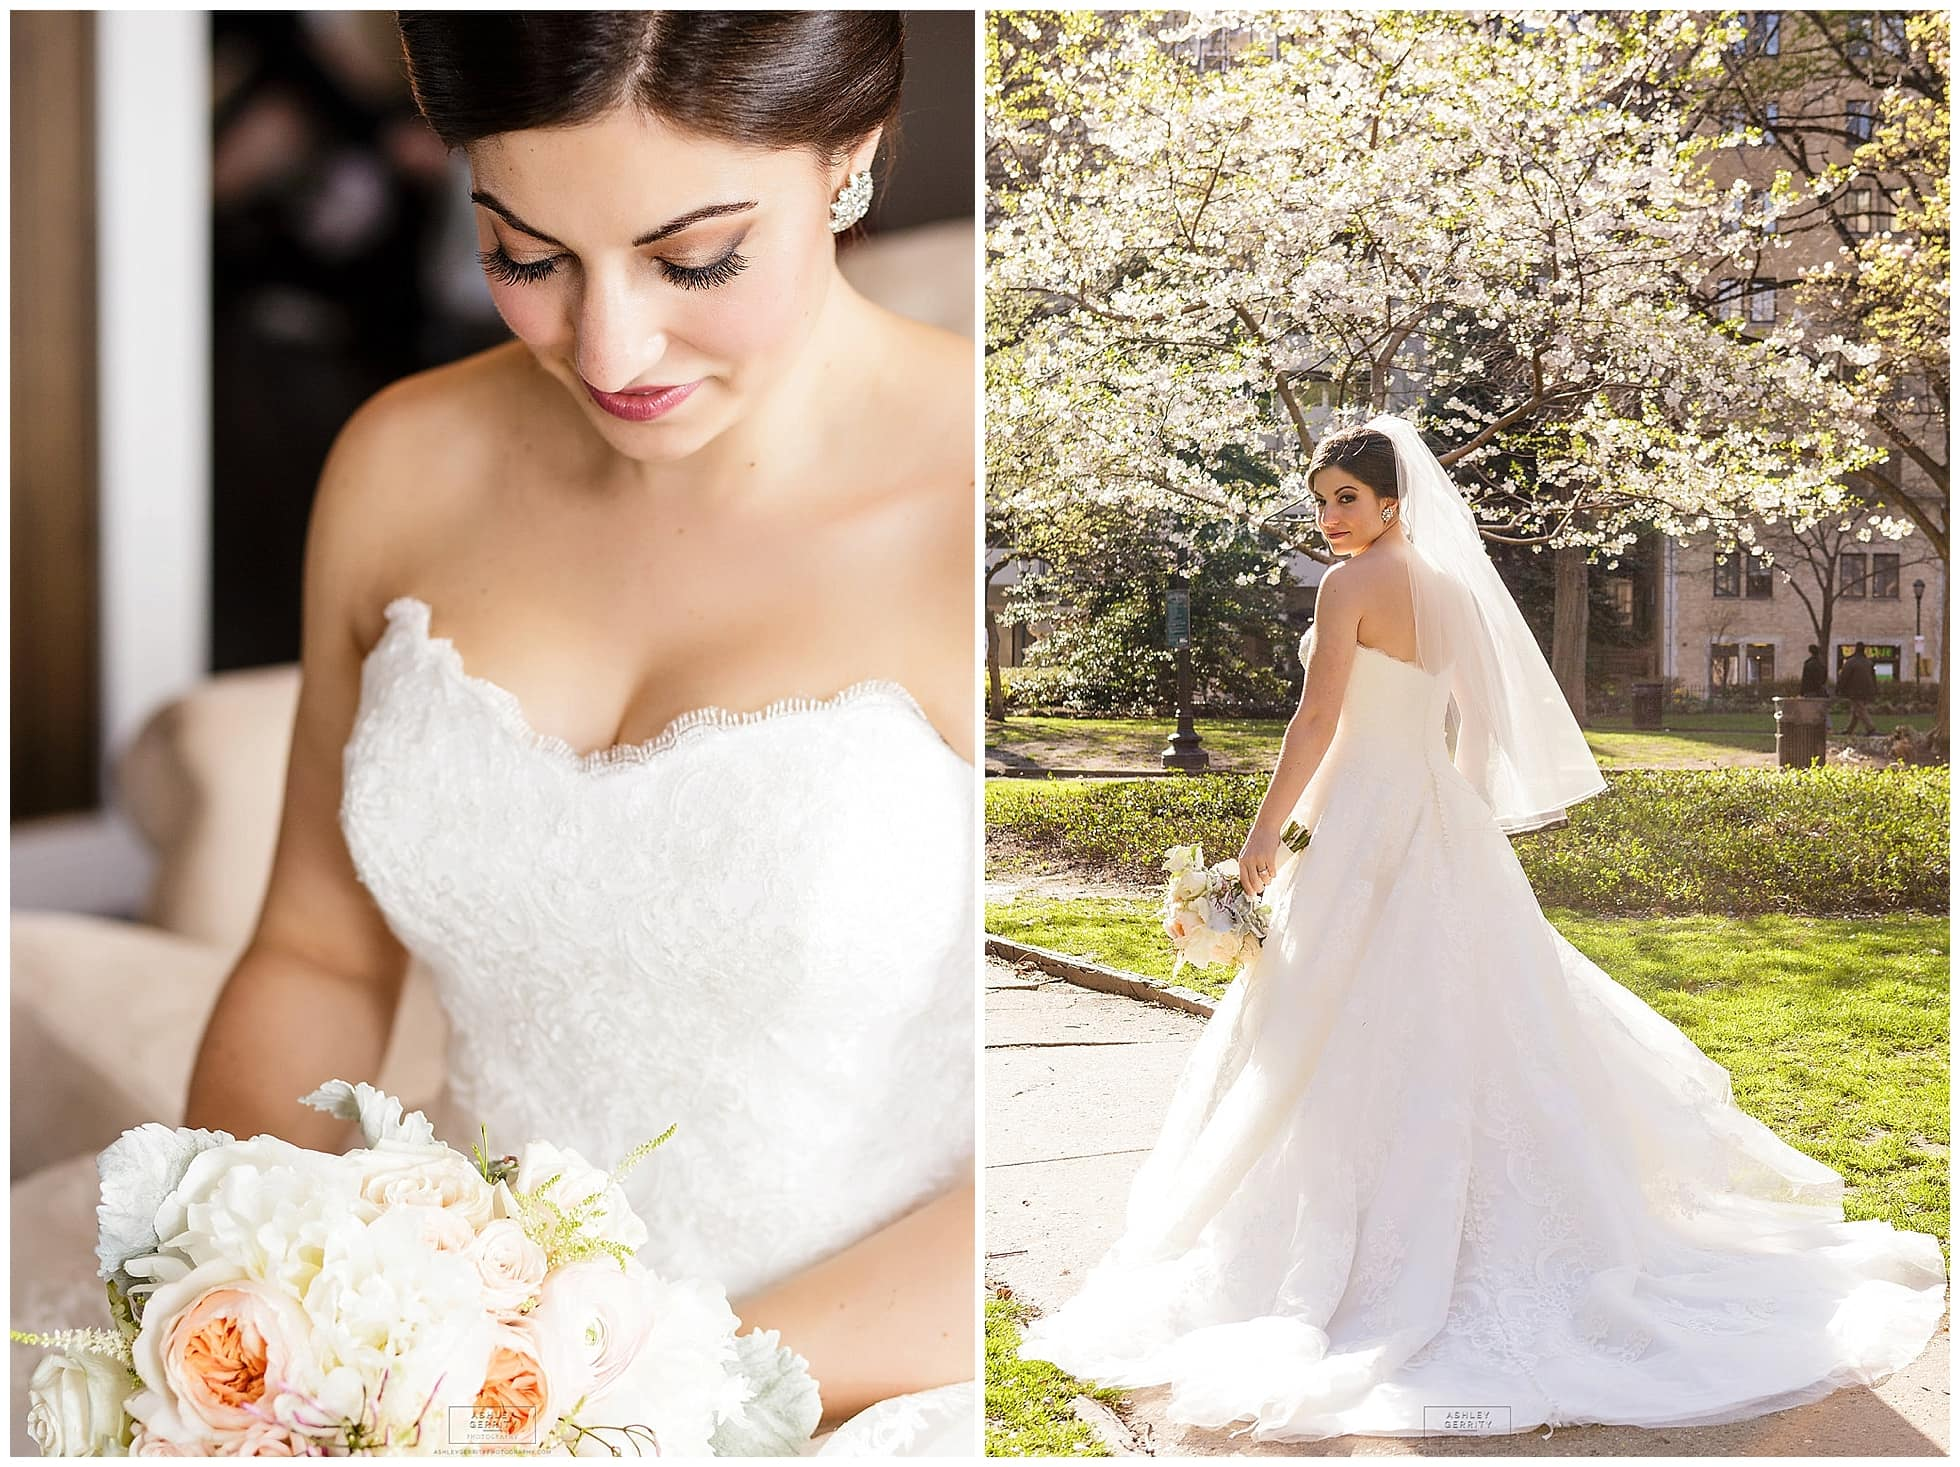 Philly wedding dresses | Bridal Gown Inspiration | PA weddings